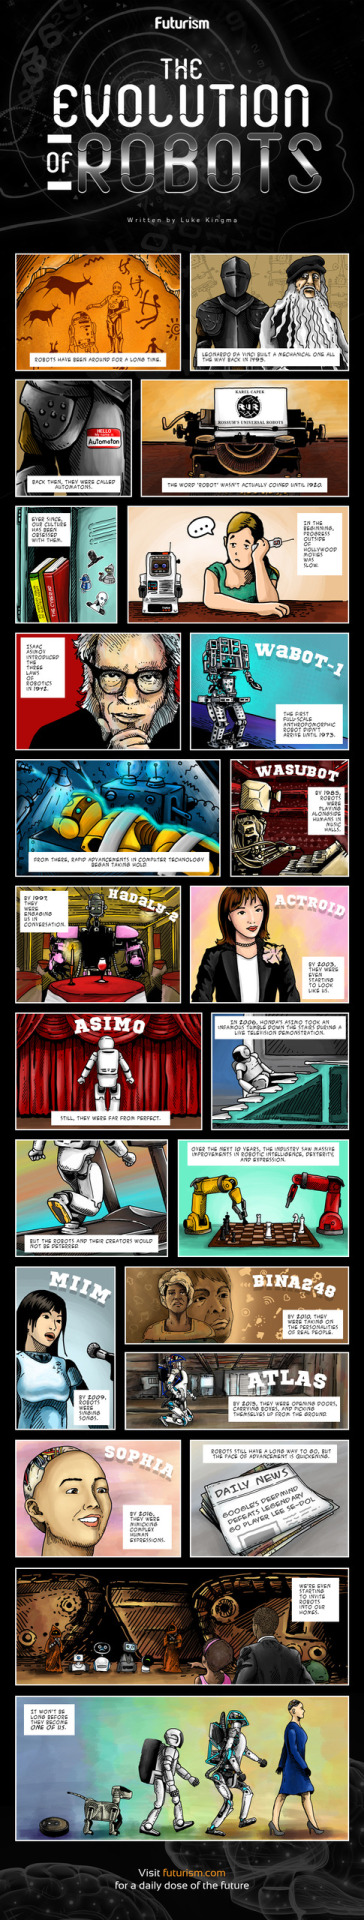 Believe it or not, robots have been around for hundreds of years. Our latest comic strip explores their evolution.